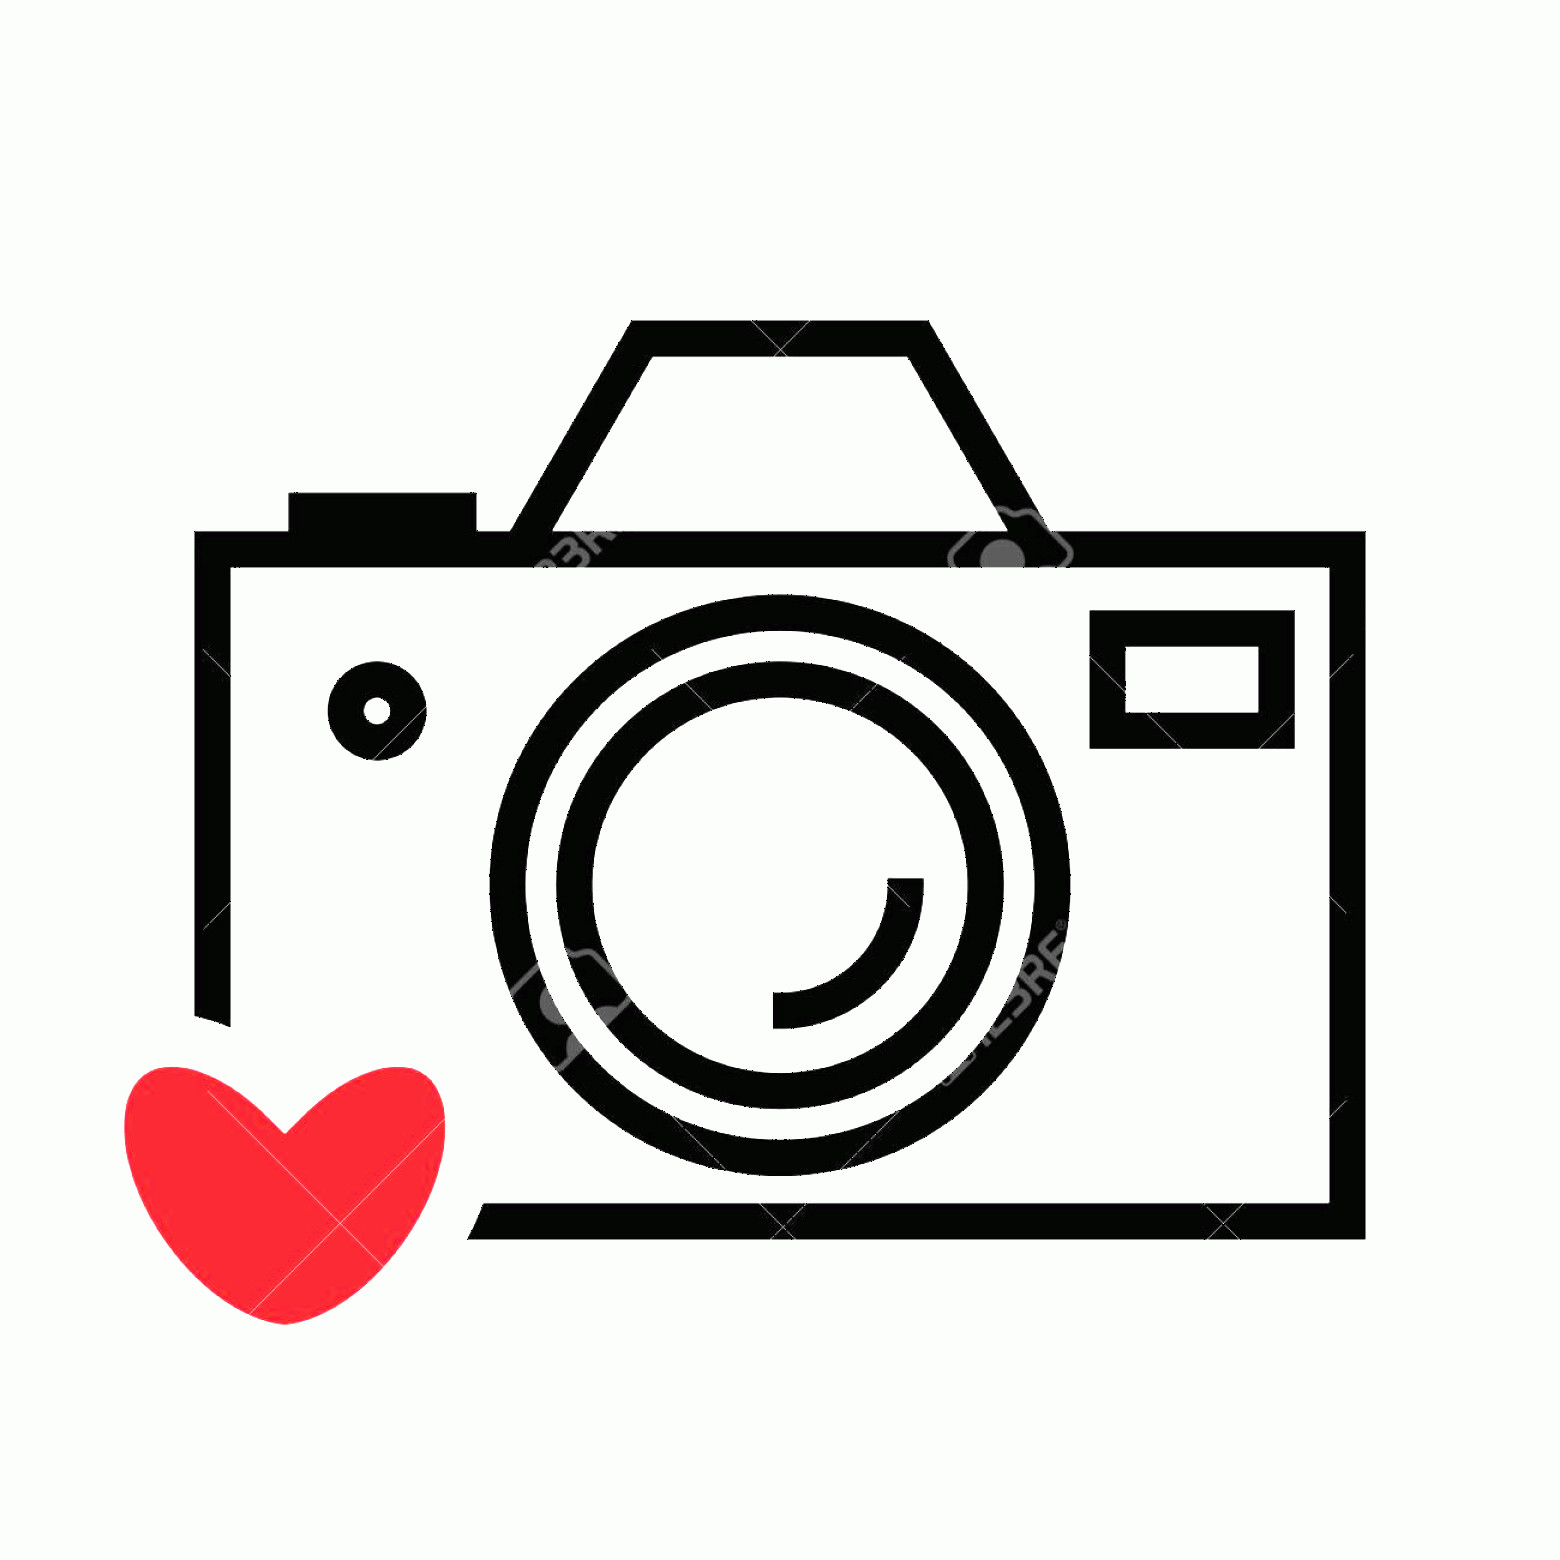 Camera Heart Clip Art Vector: Photostock Vector Digital Camera And Heart Vector Icon Snapshot Photography Sign Or Logo